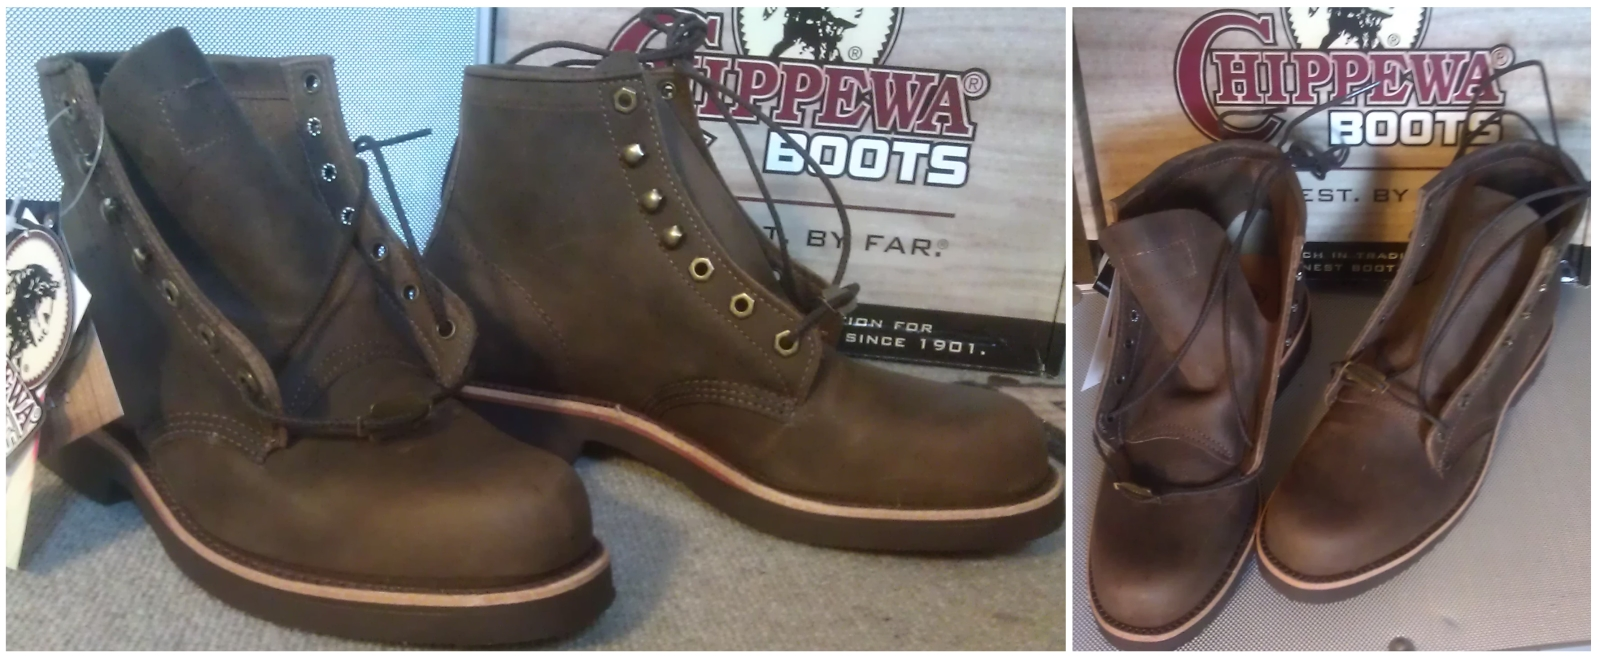 "Chippewa 20065 ""GQ"" Boot in ""Apache Chocolate"", just unboxed"